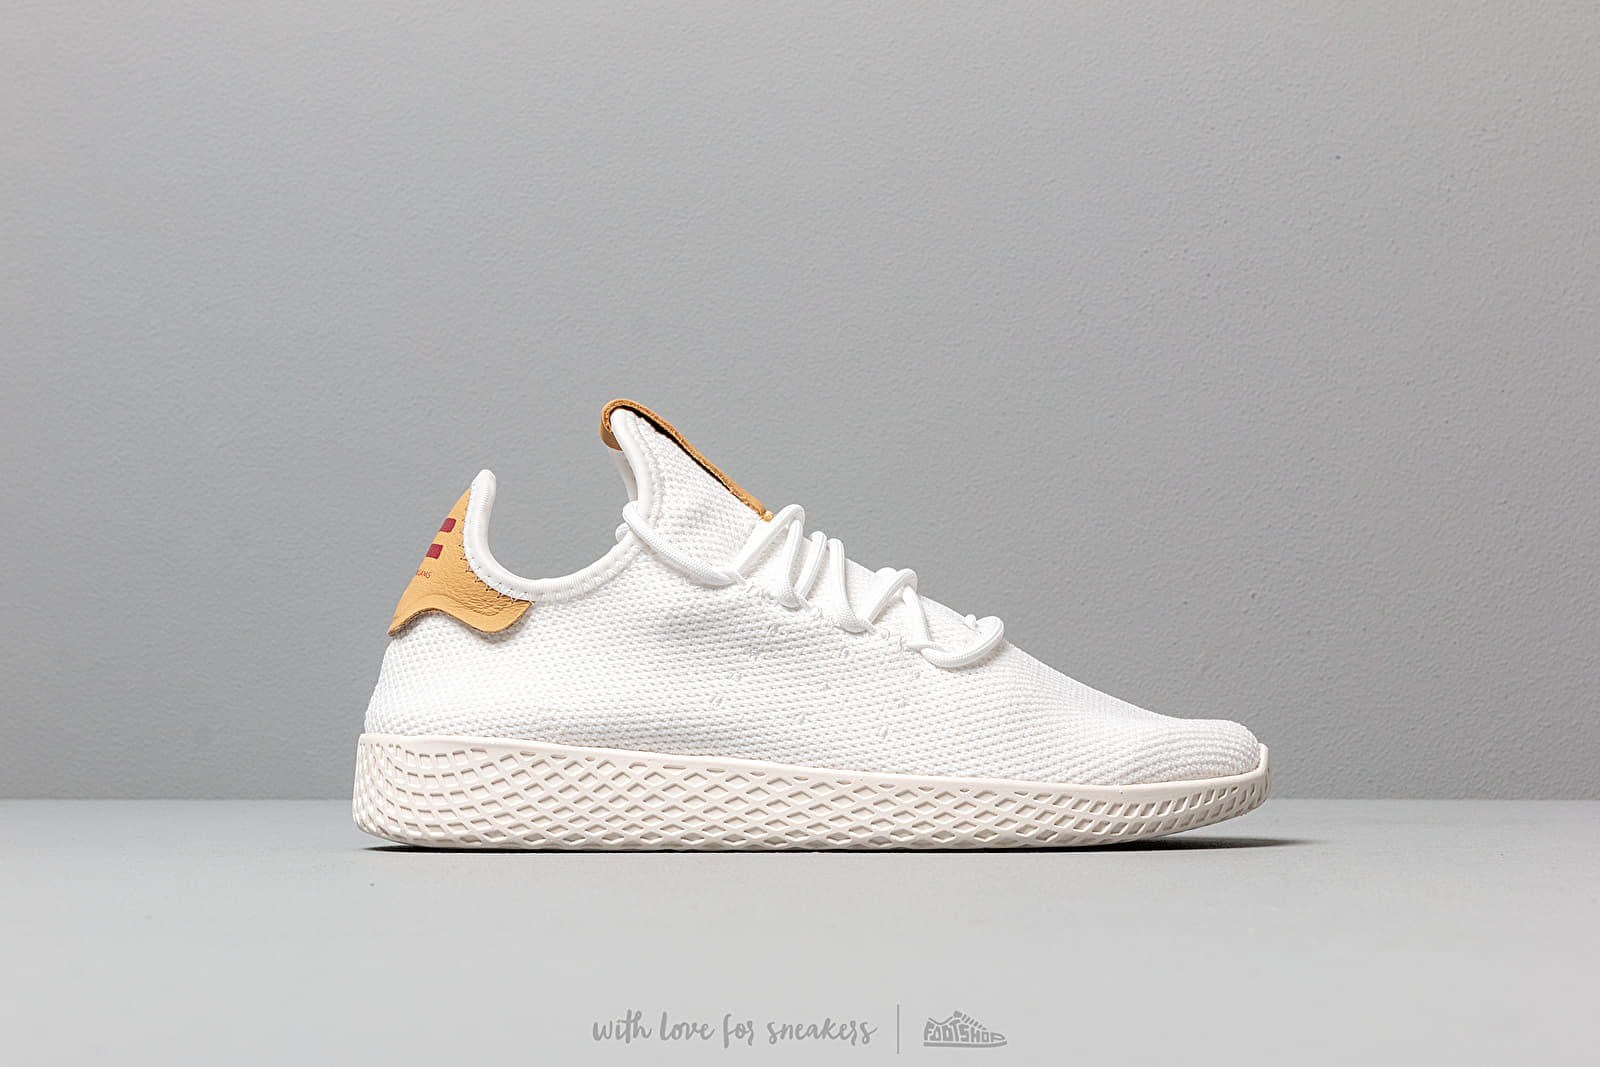 Matemáticas Bebida Tender  Women's shoes adidas Pw Tennis Hu W Ftw White/ Ftw White/ Raw Sand |  Footshop